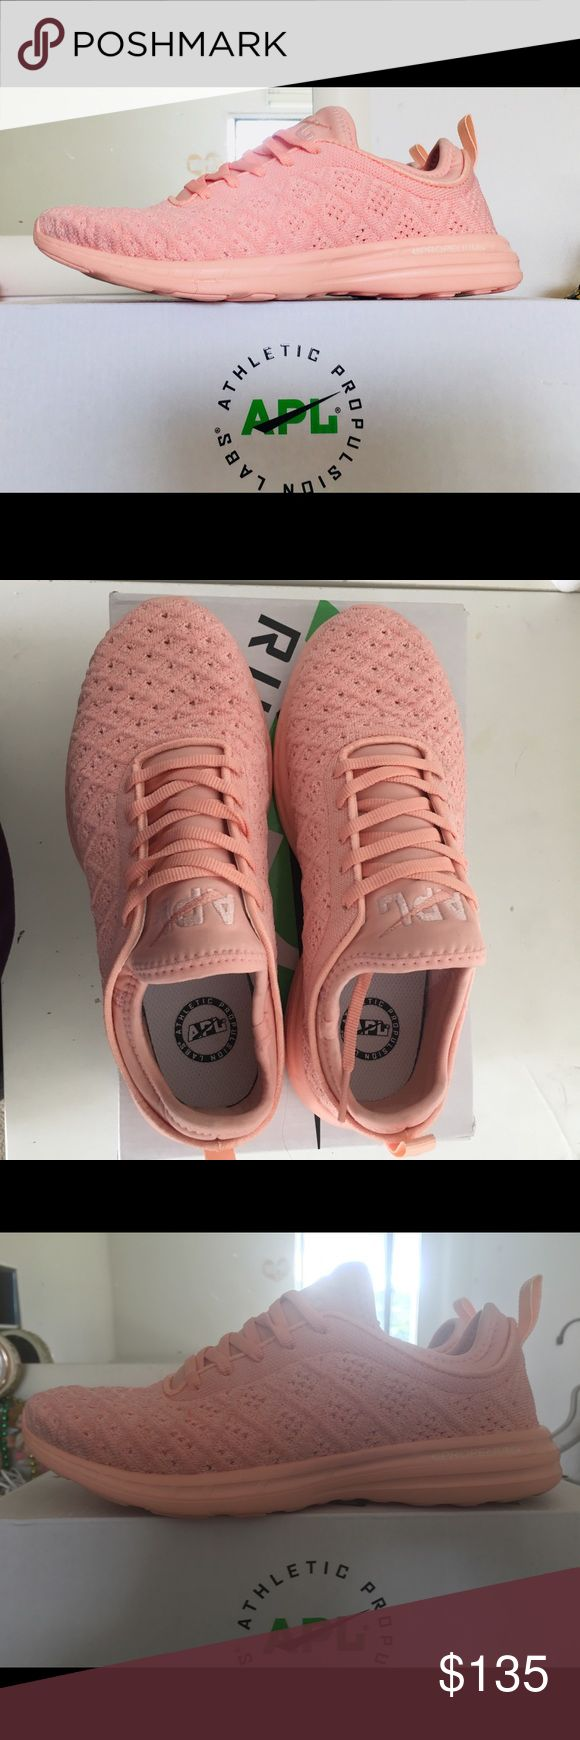 APL (Athletic Propulsion Labs) Techloom Phantom Like New APL sneakers in women size 6! Tropical peach color. Like new- worn only once to try on indoors. Super cute! In original box. APL Shoes Athletic Shoes